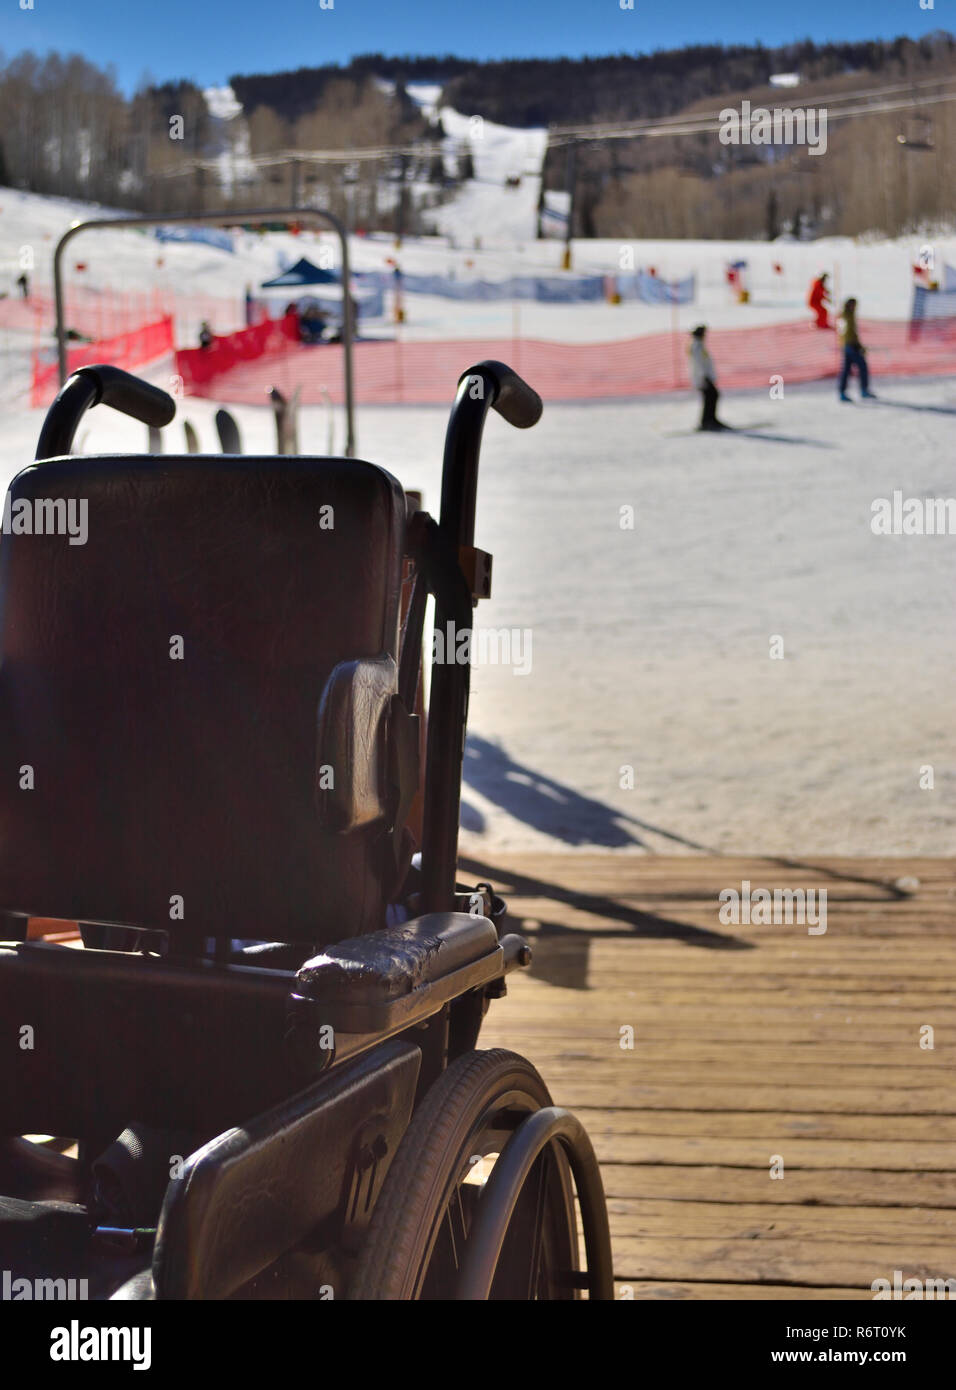 Empty wheelchair at Colorado Special Olympics alpine skiing competition event - Stock Image